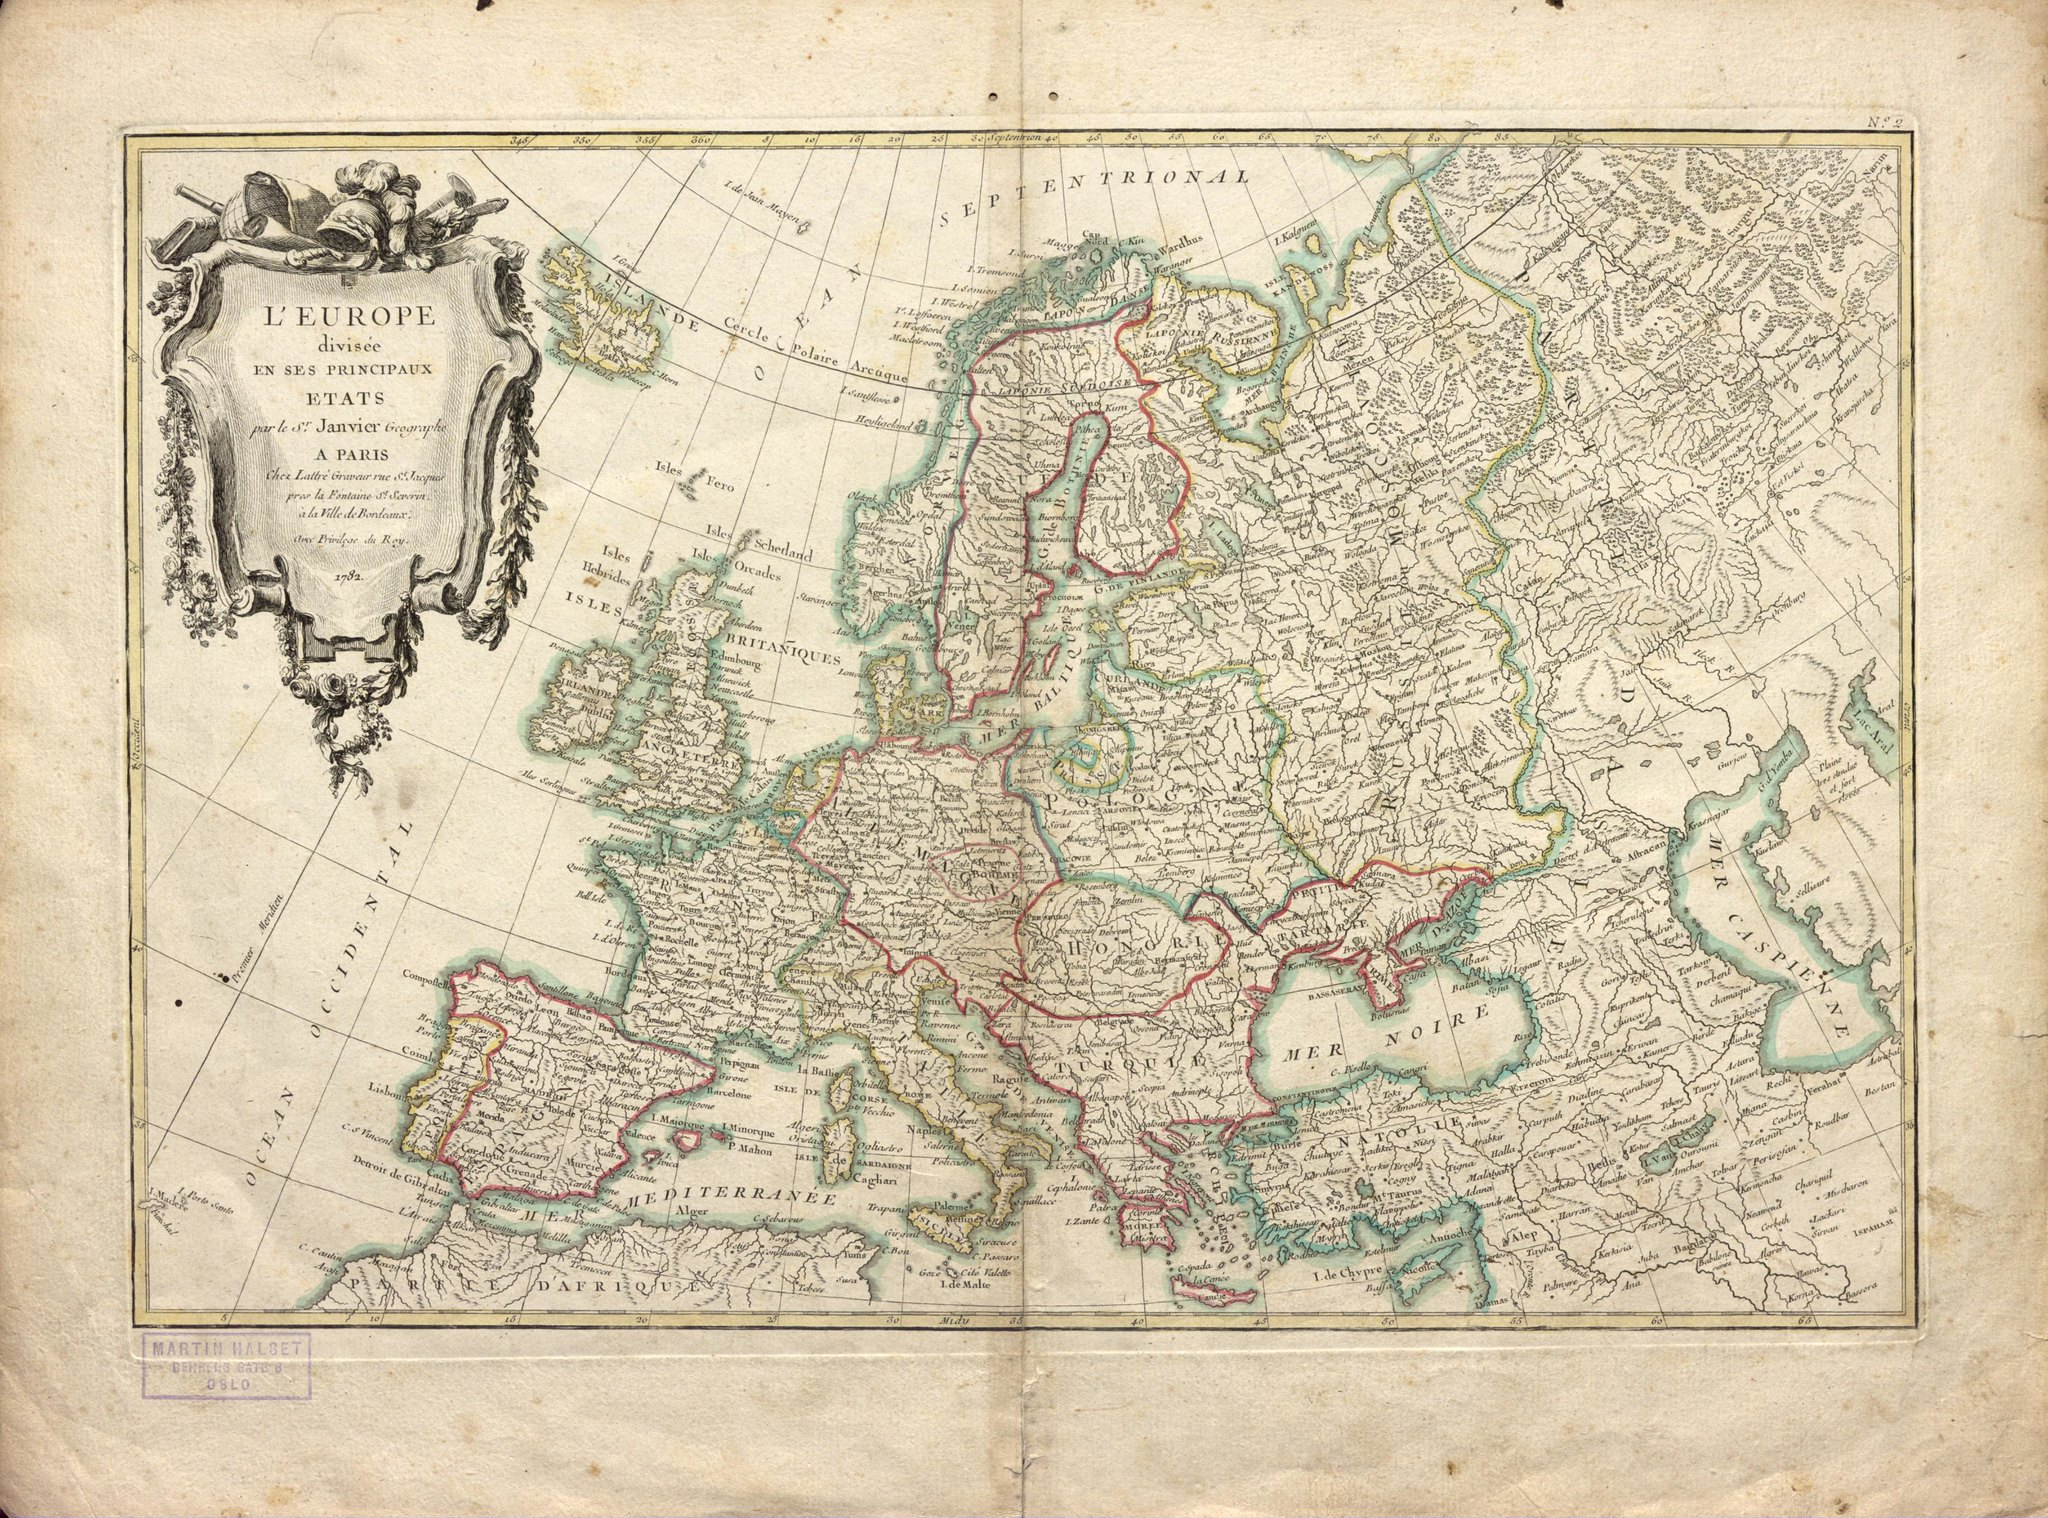 Europe 1782 2048 x 1518 mapporn welcome to reddit gumiabroncs Image collections